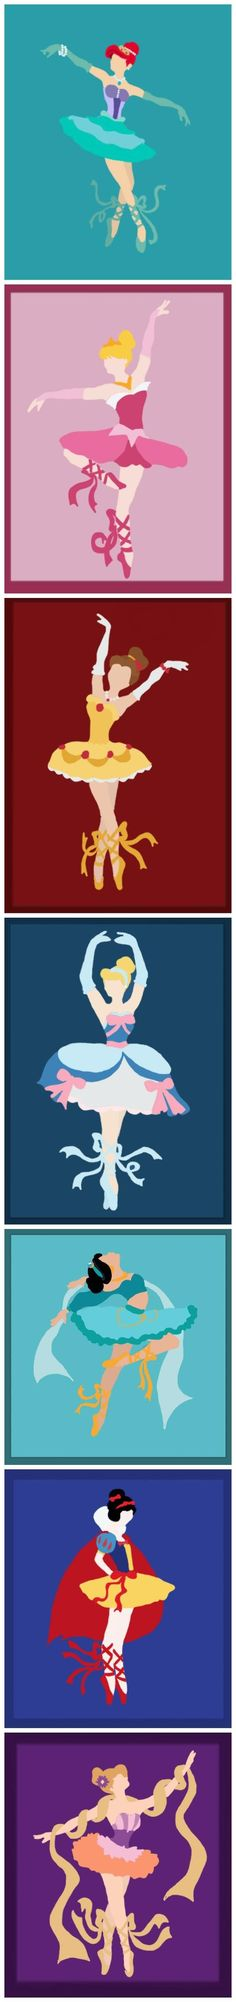 Disney princesses as ballerinas!